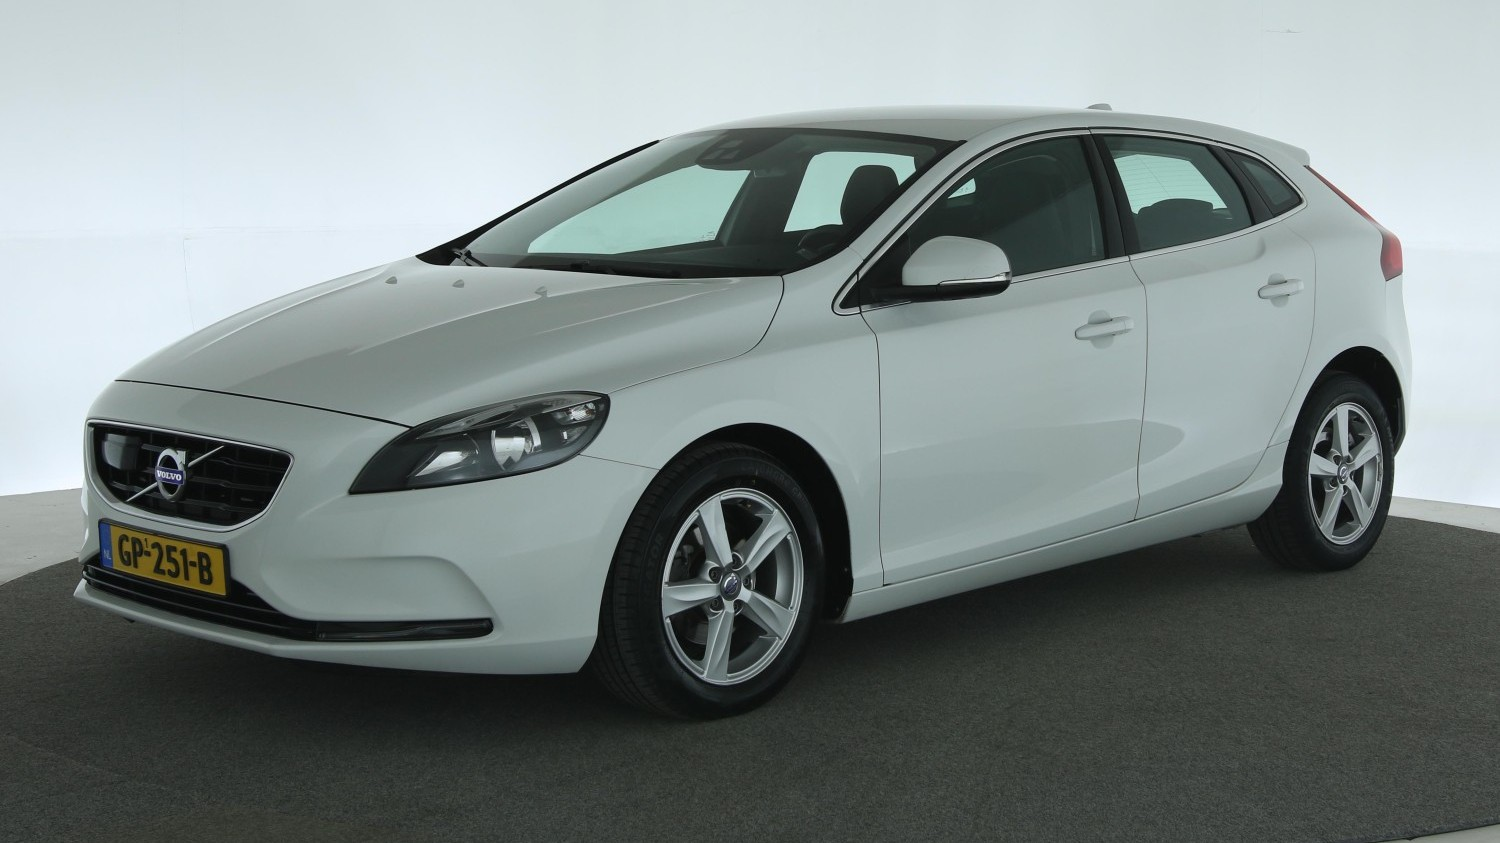 Volvo V40 Hatchback 2015 GP-251-B 1